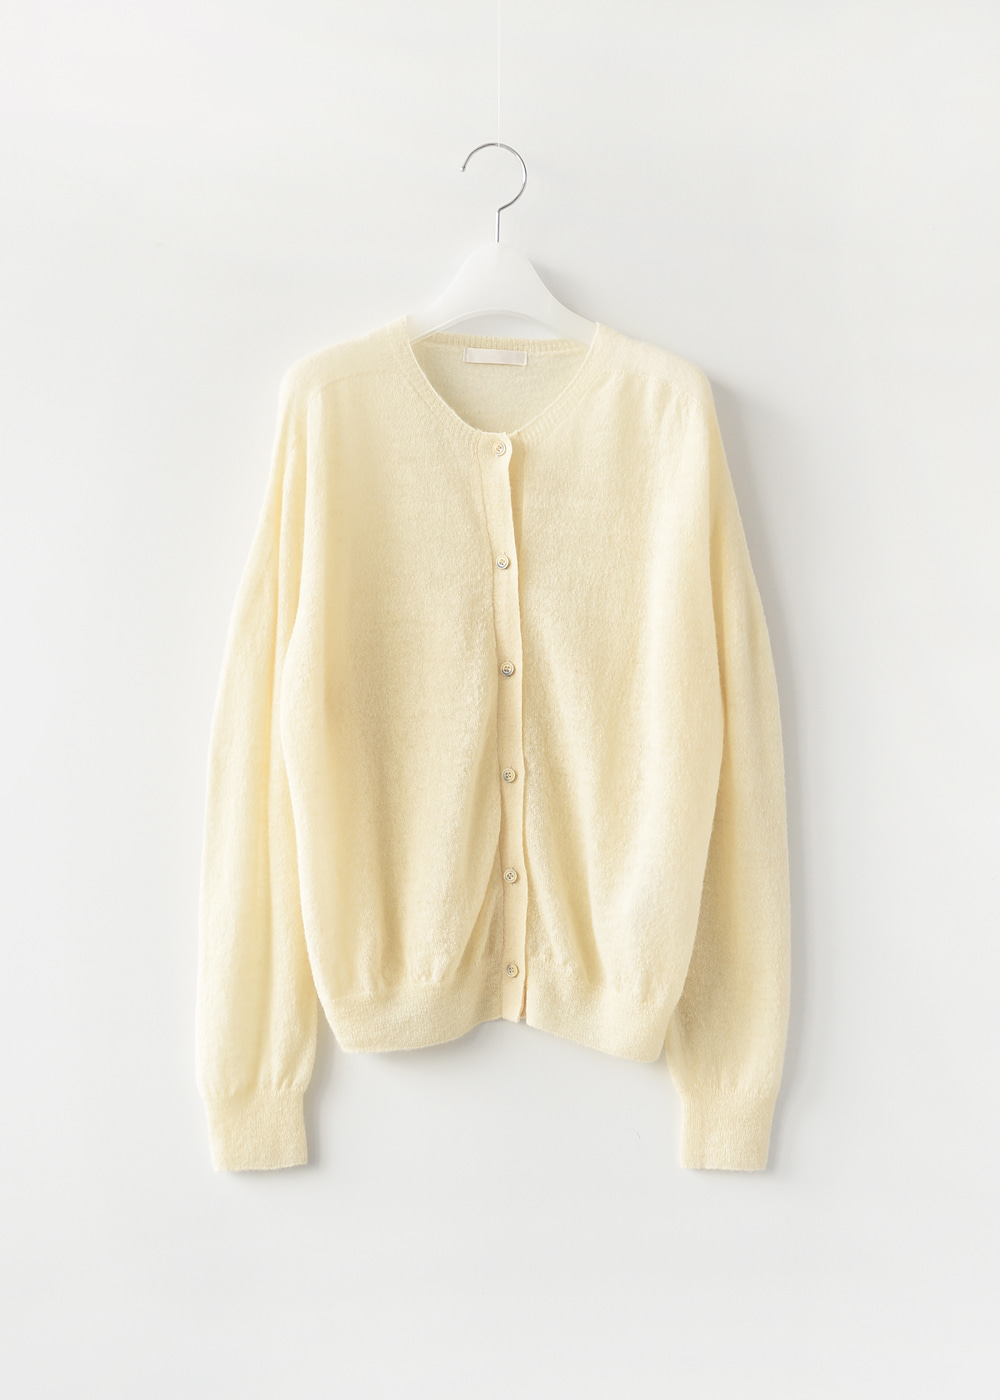 Cozy Wholegarment Cardigan